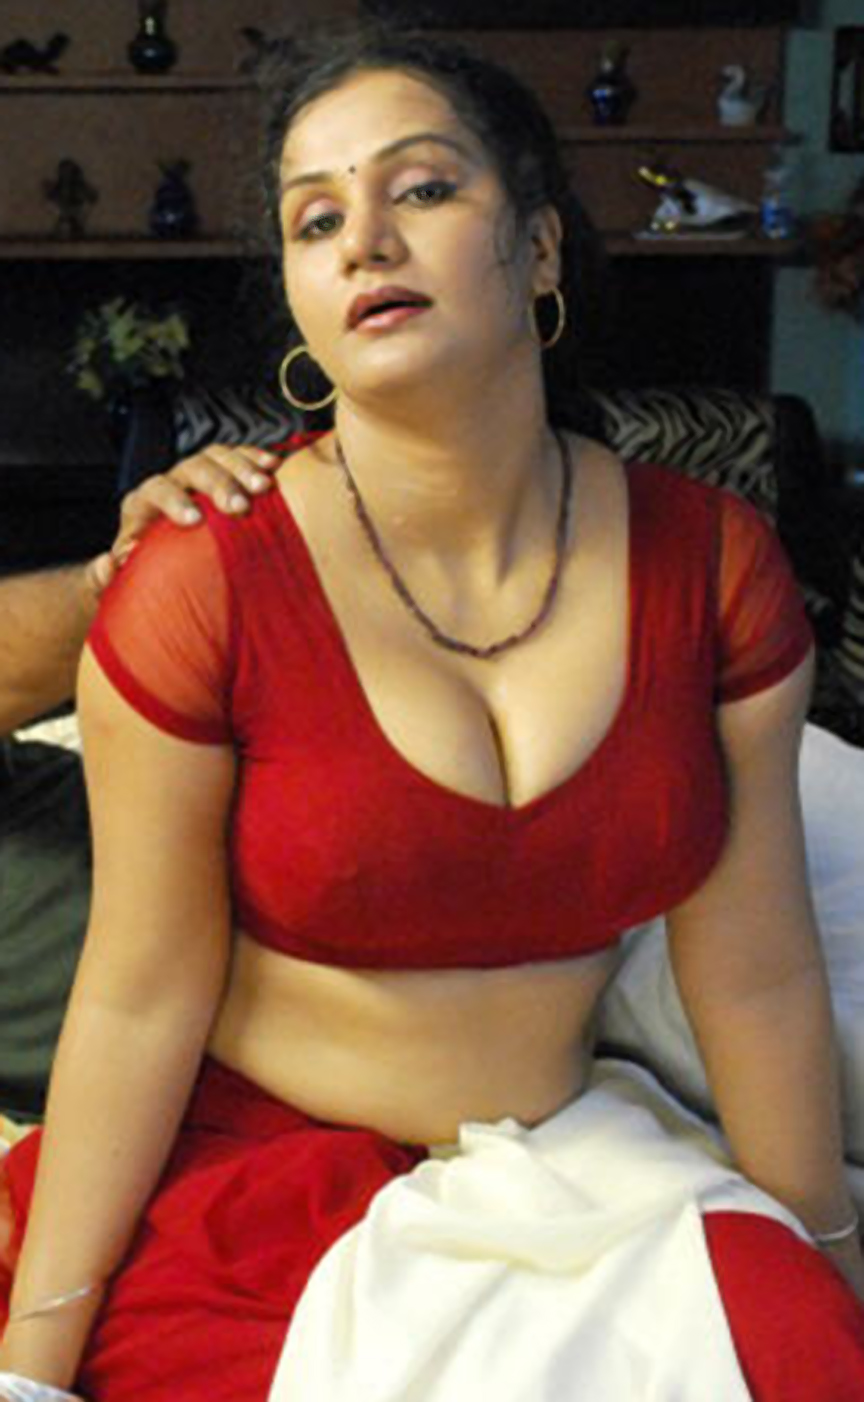 Movie mallu videos maria any boyfriend photo